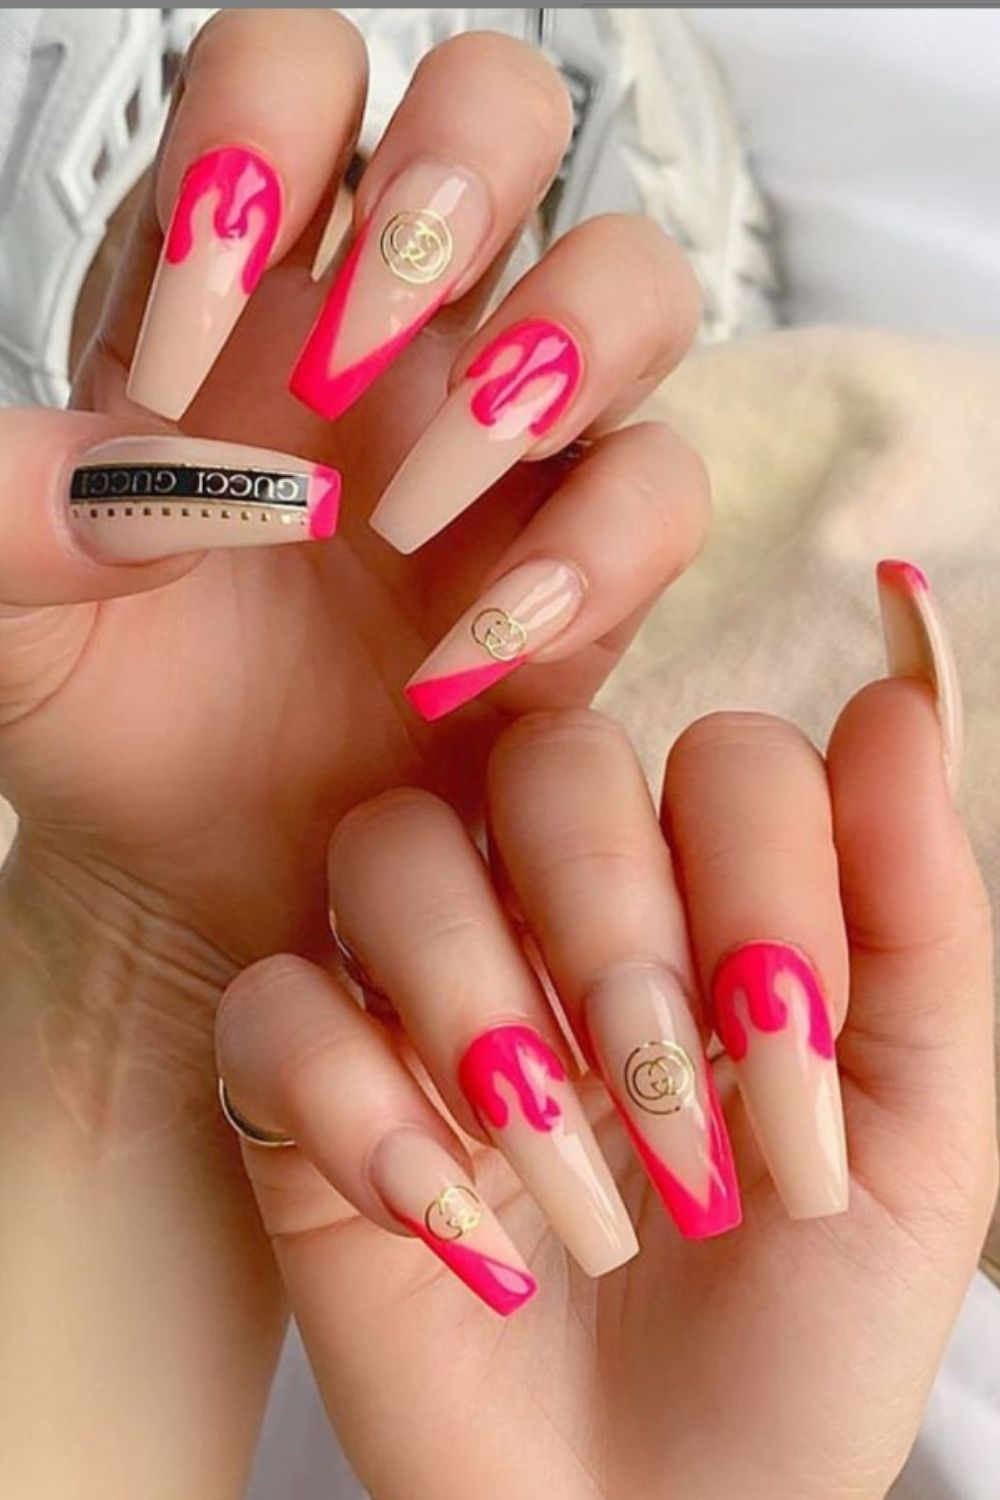 Elegant French Coffin Nails To Try At Home Right Now!